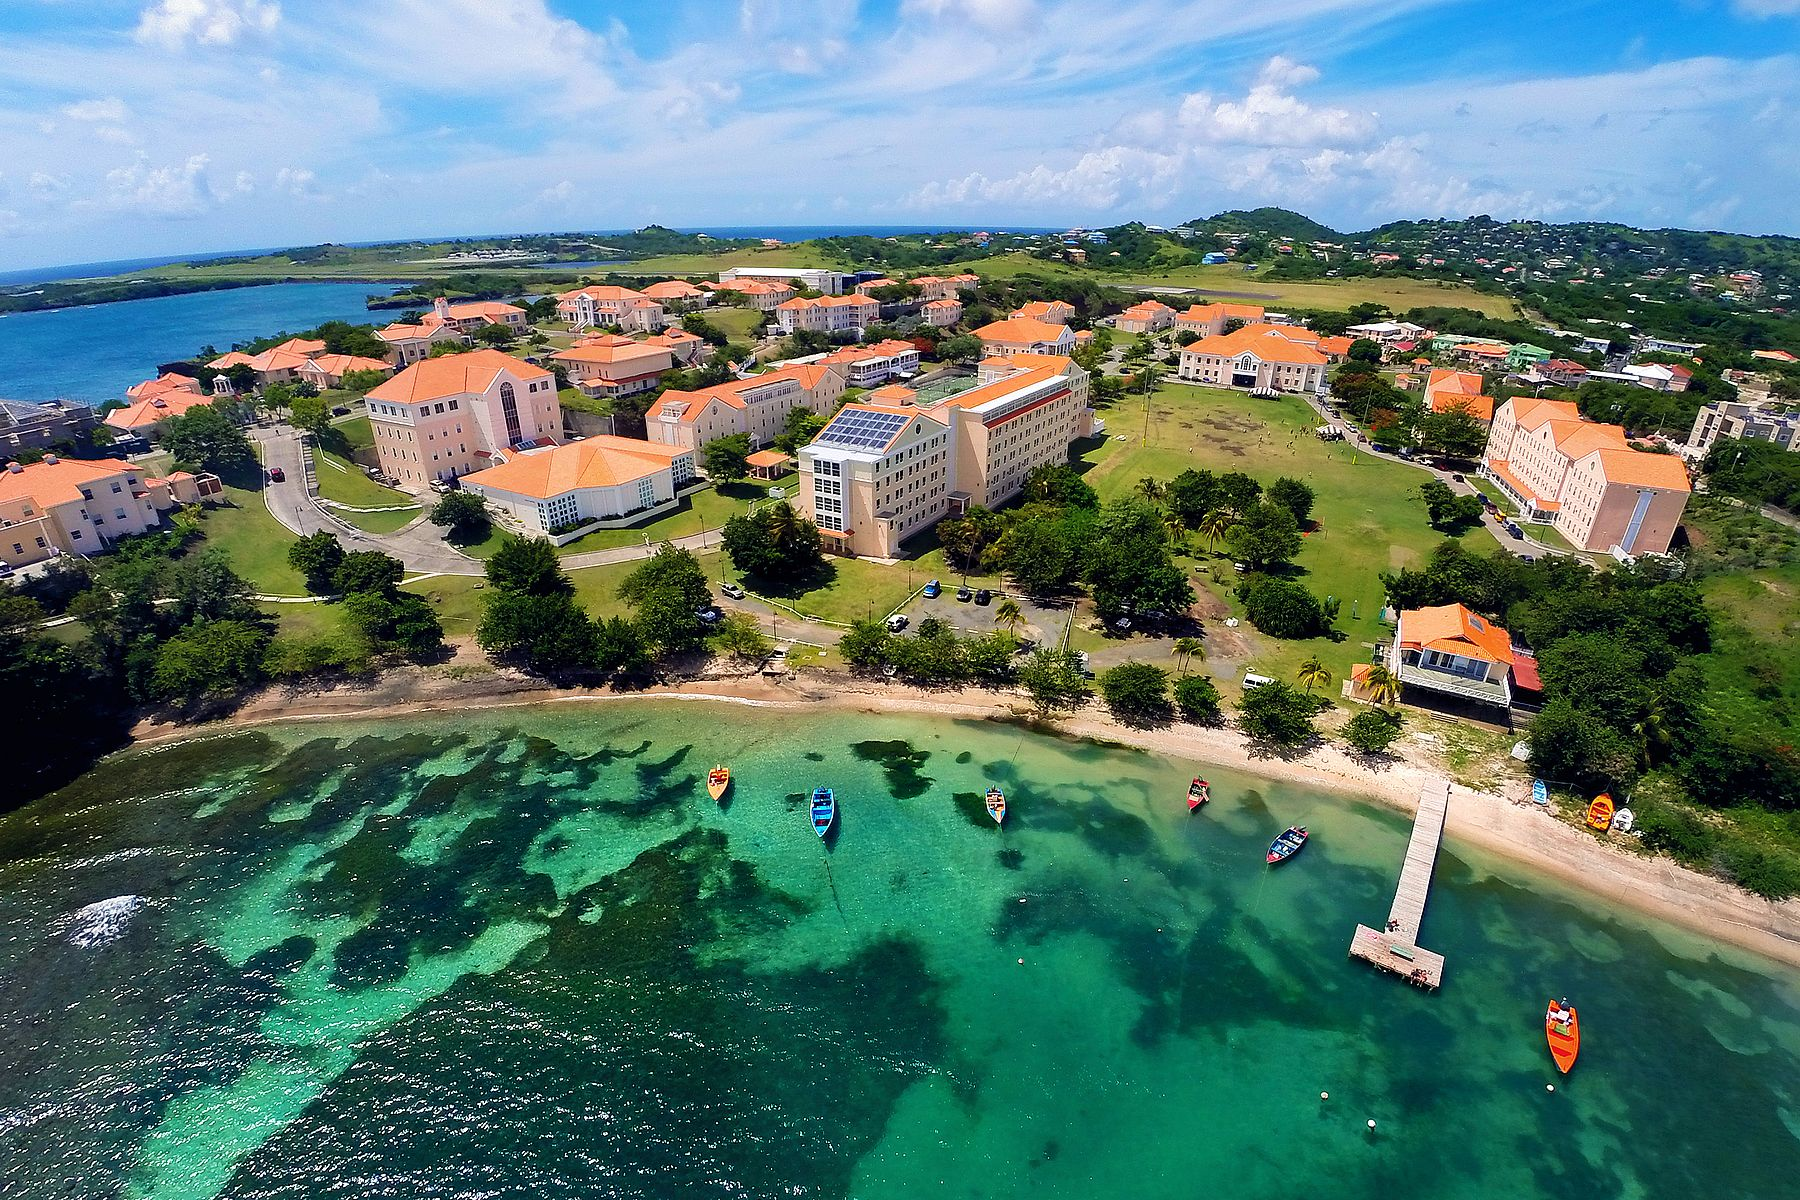 St Georges university grenada, citizenship by investment LIO Global